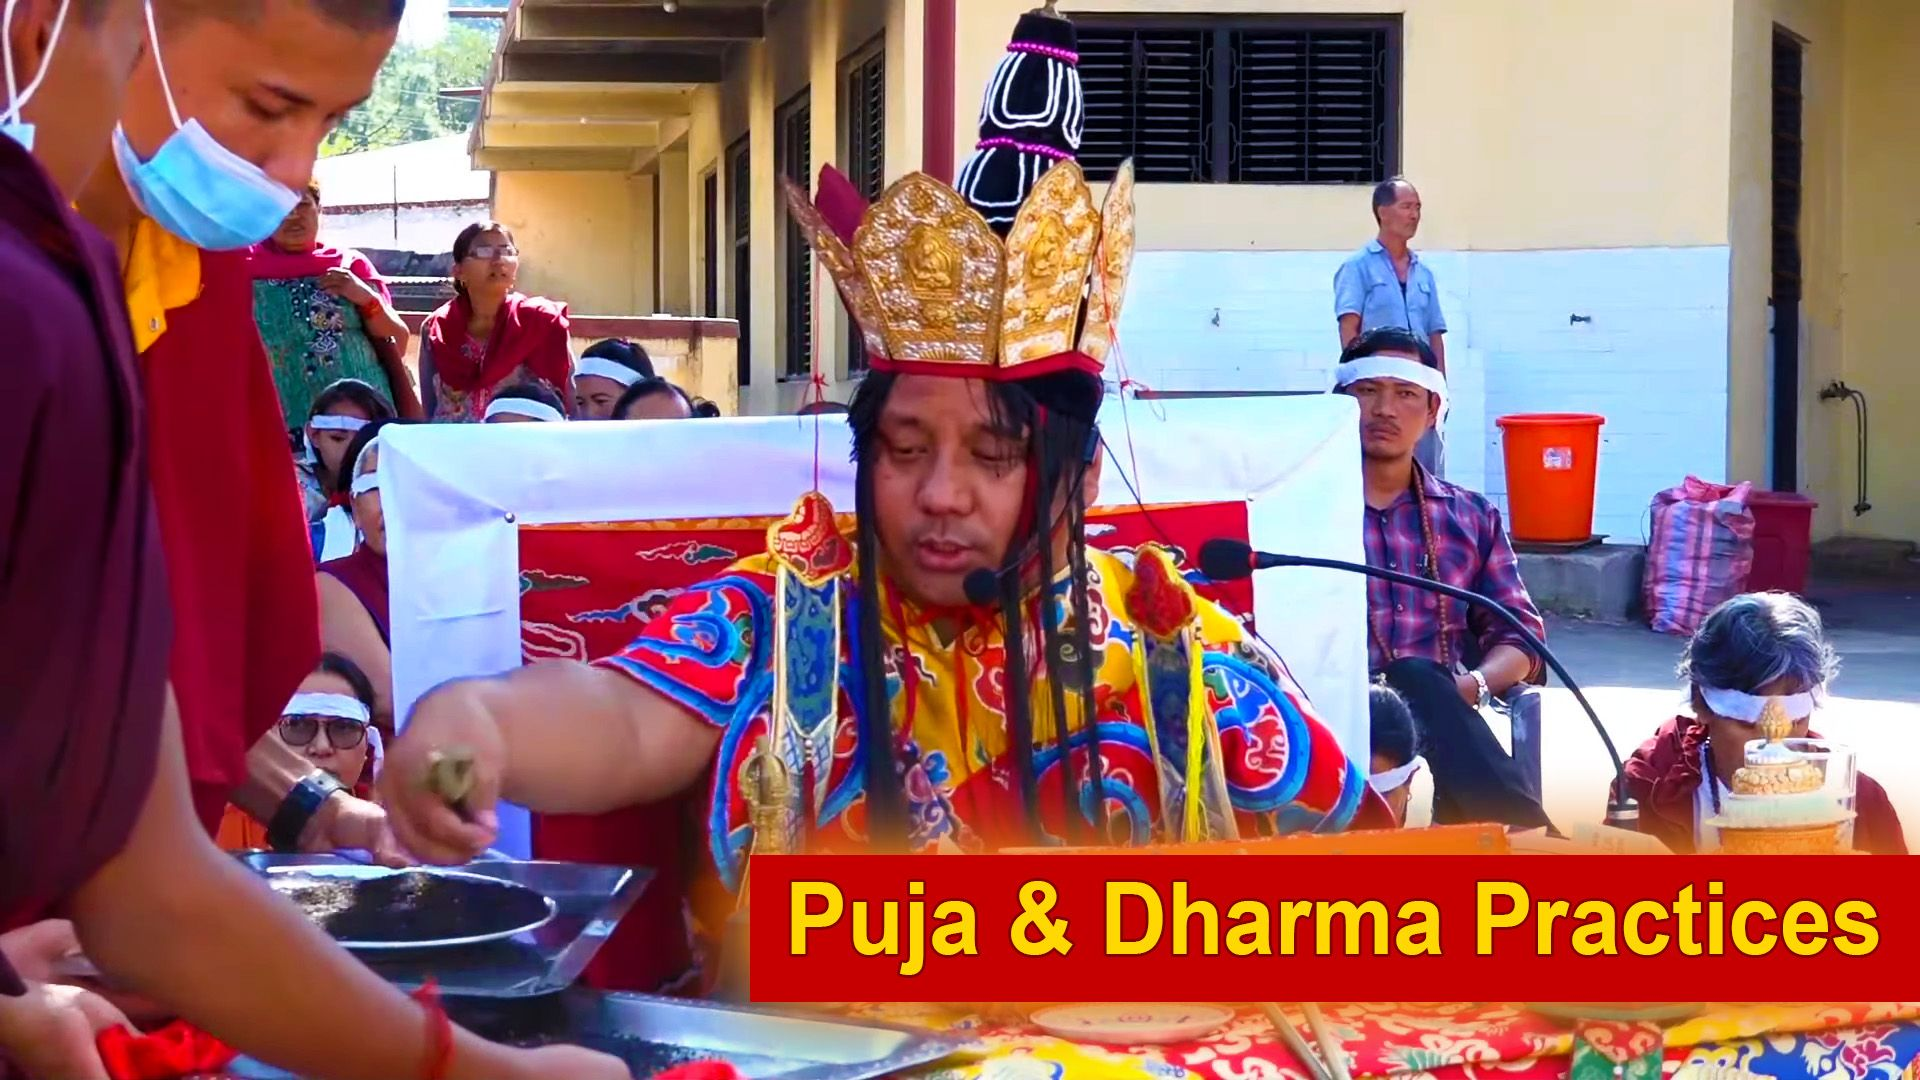 Puja & Dharma Practices